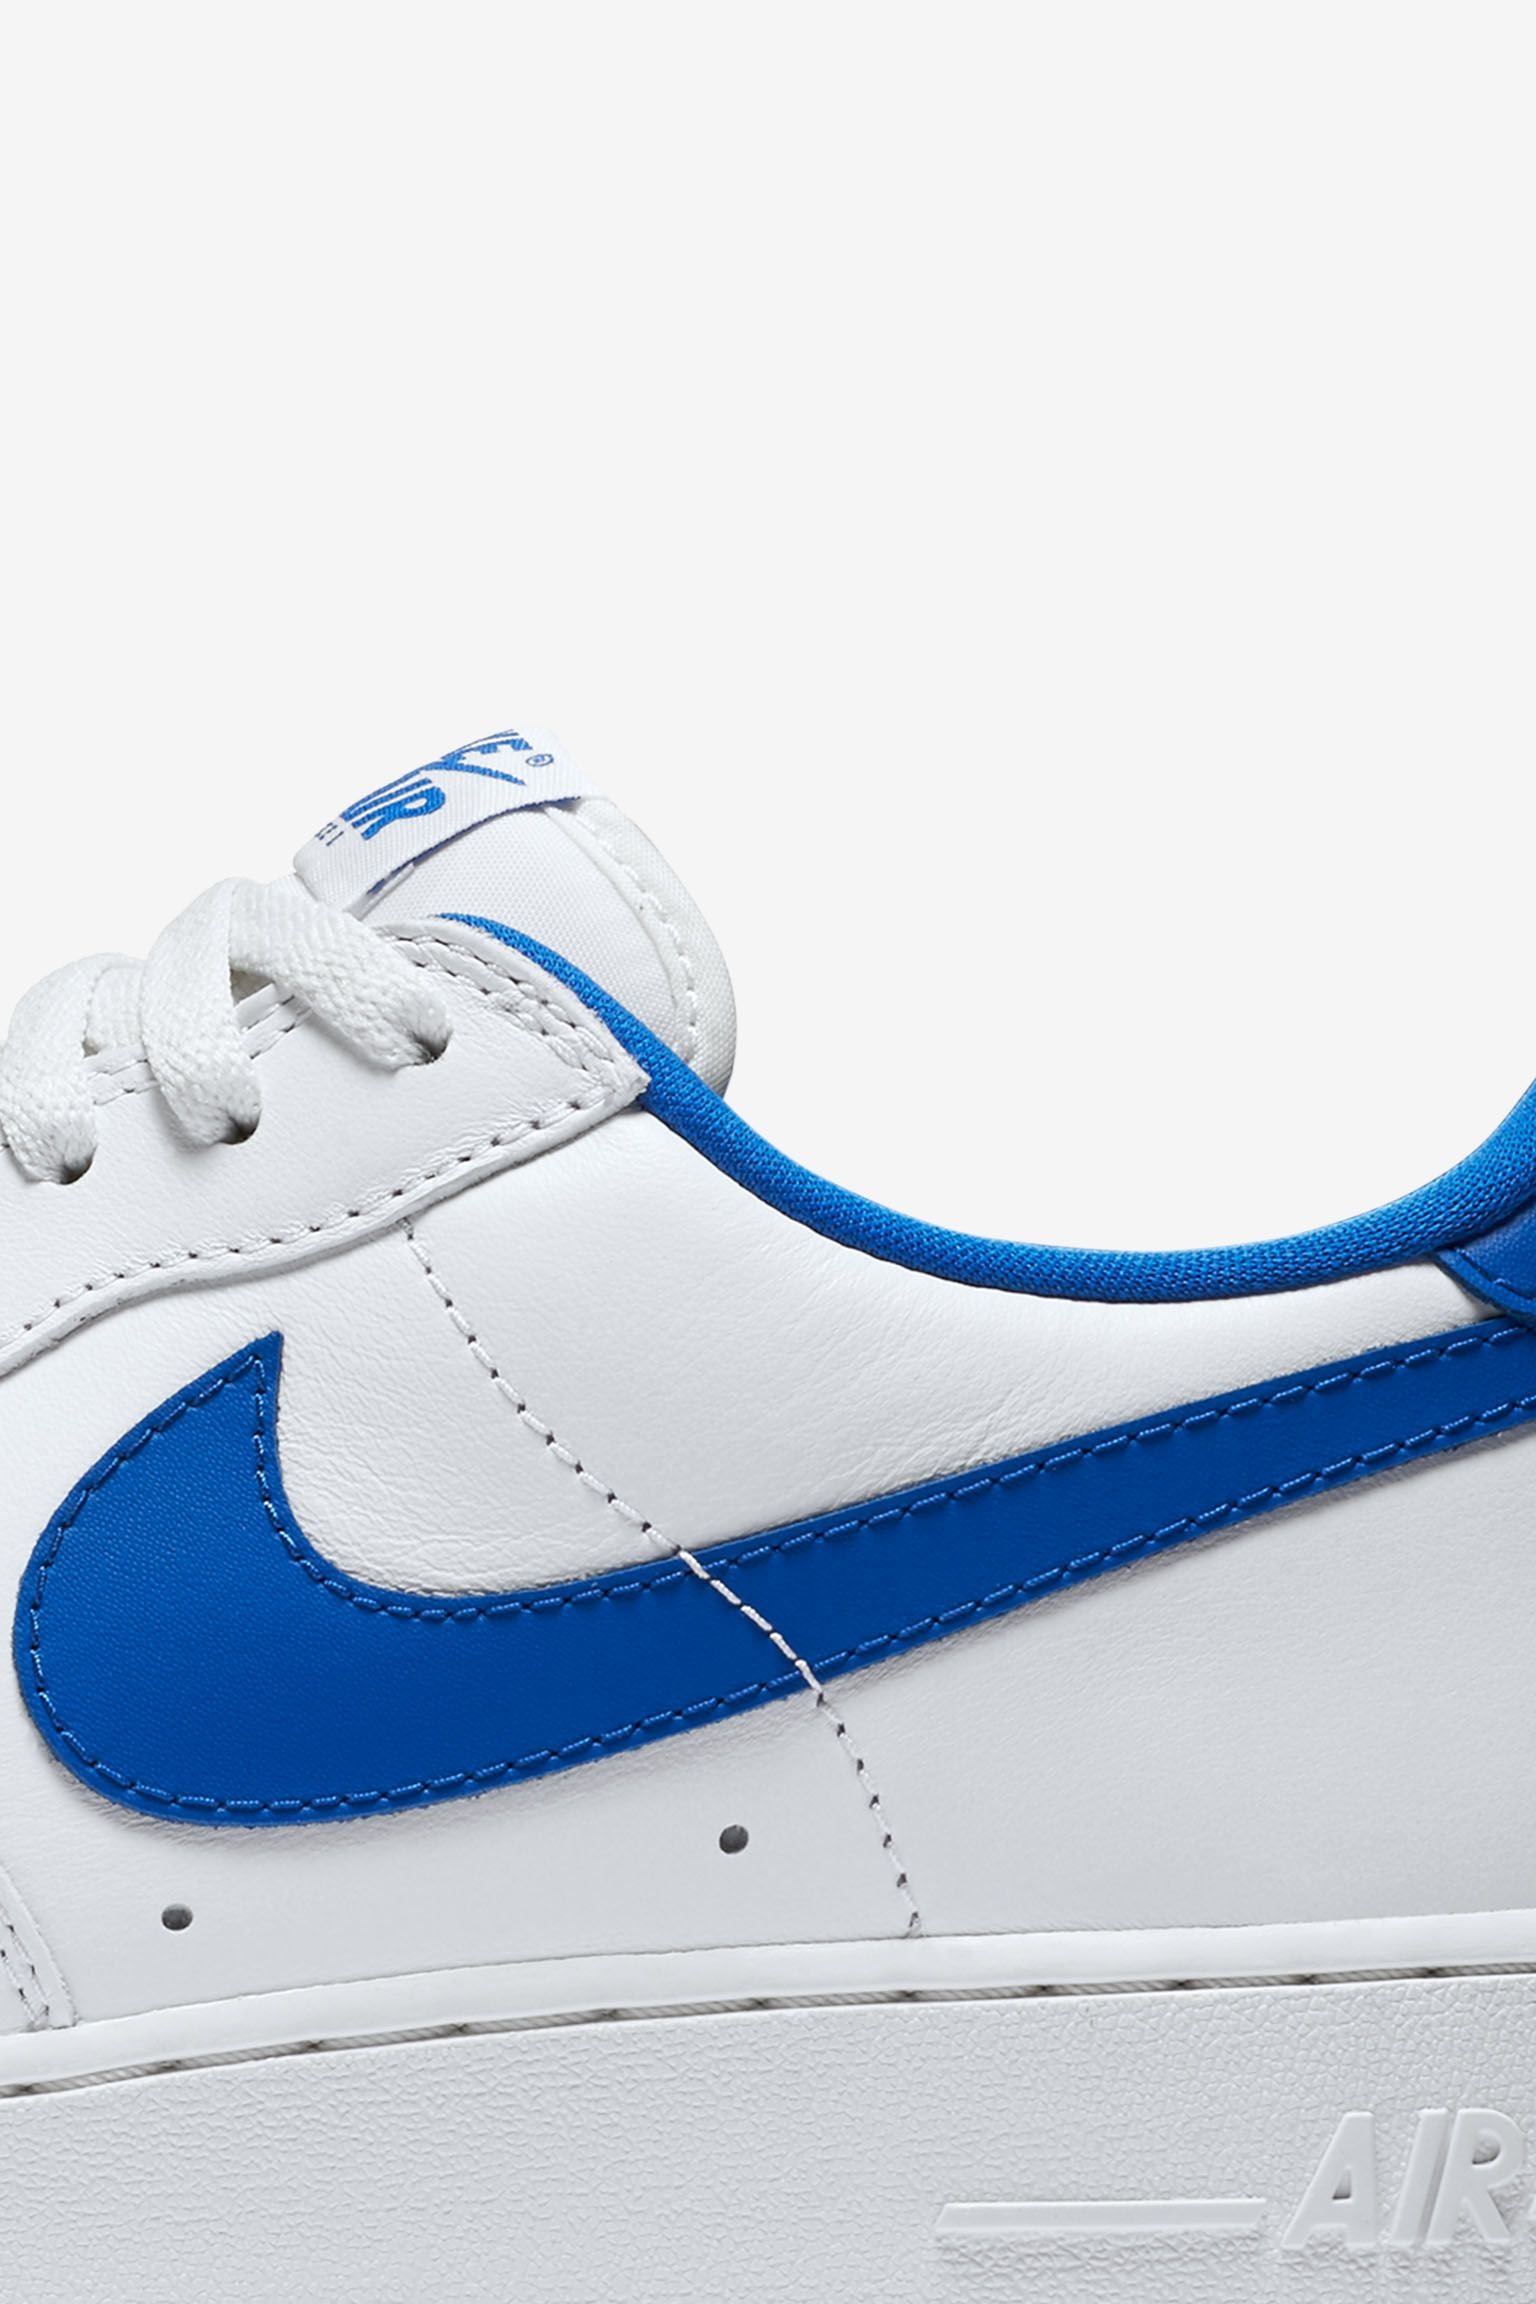 Nike Air Force 1 Low Retro 'White & Game Royal' Release Date